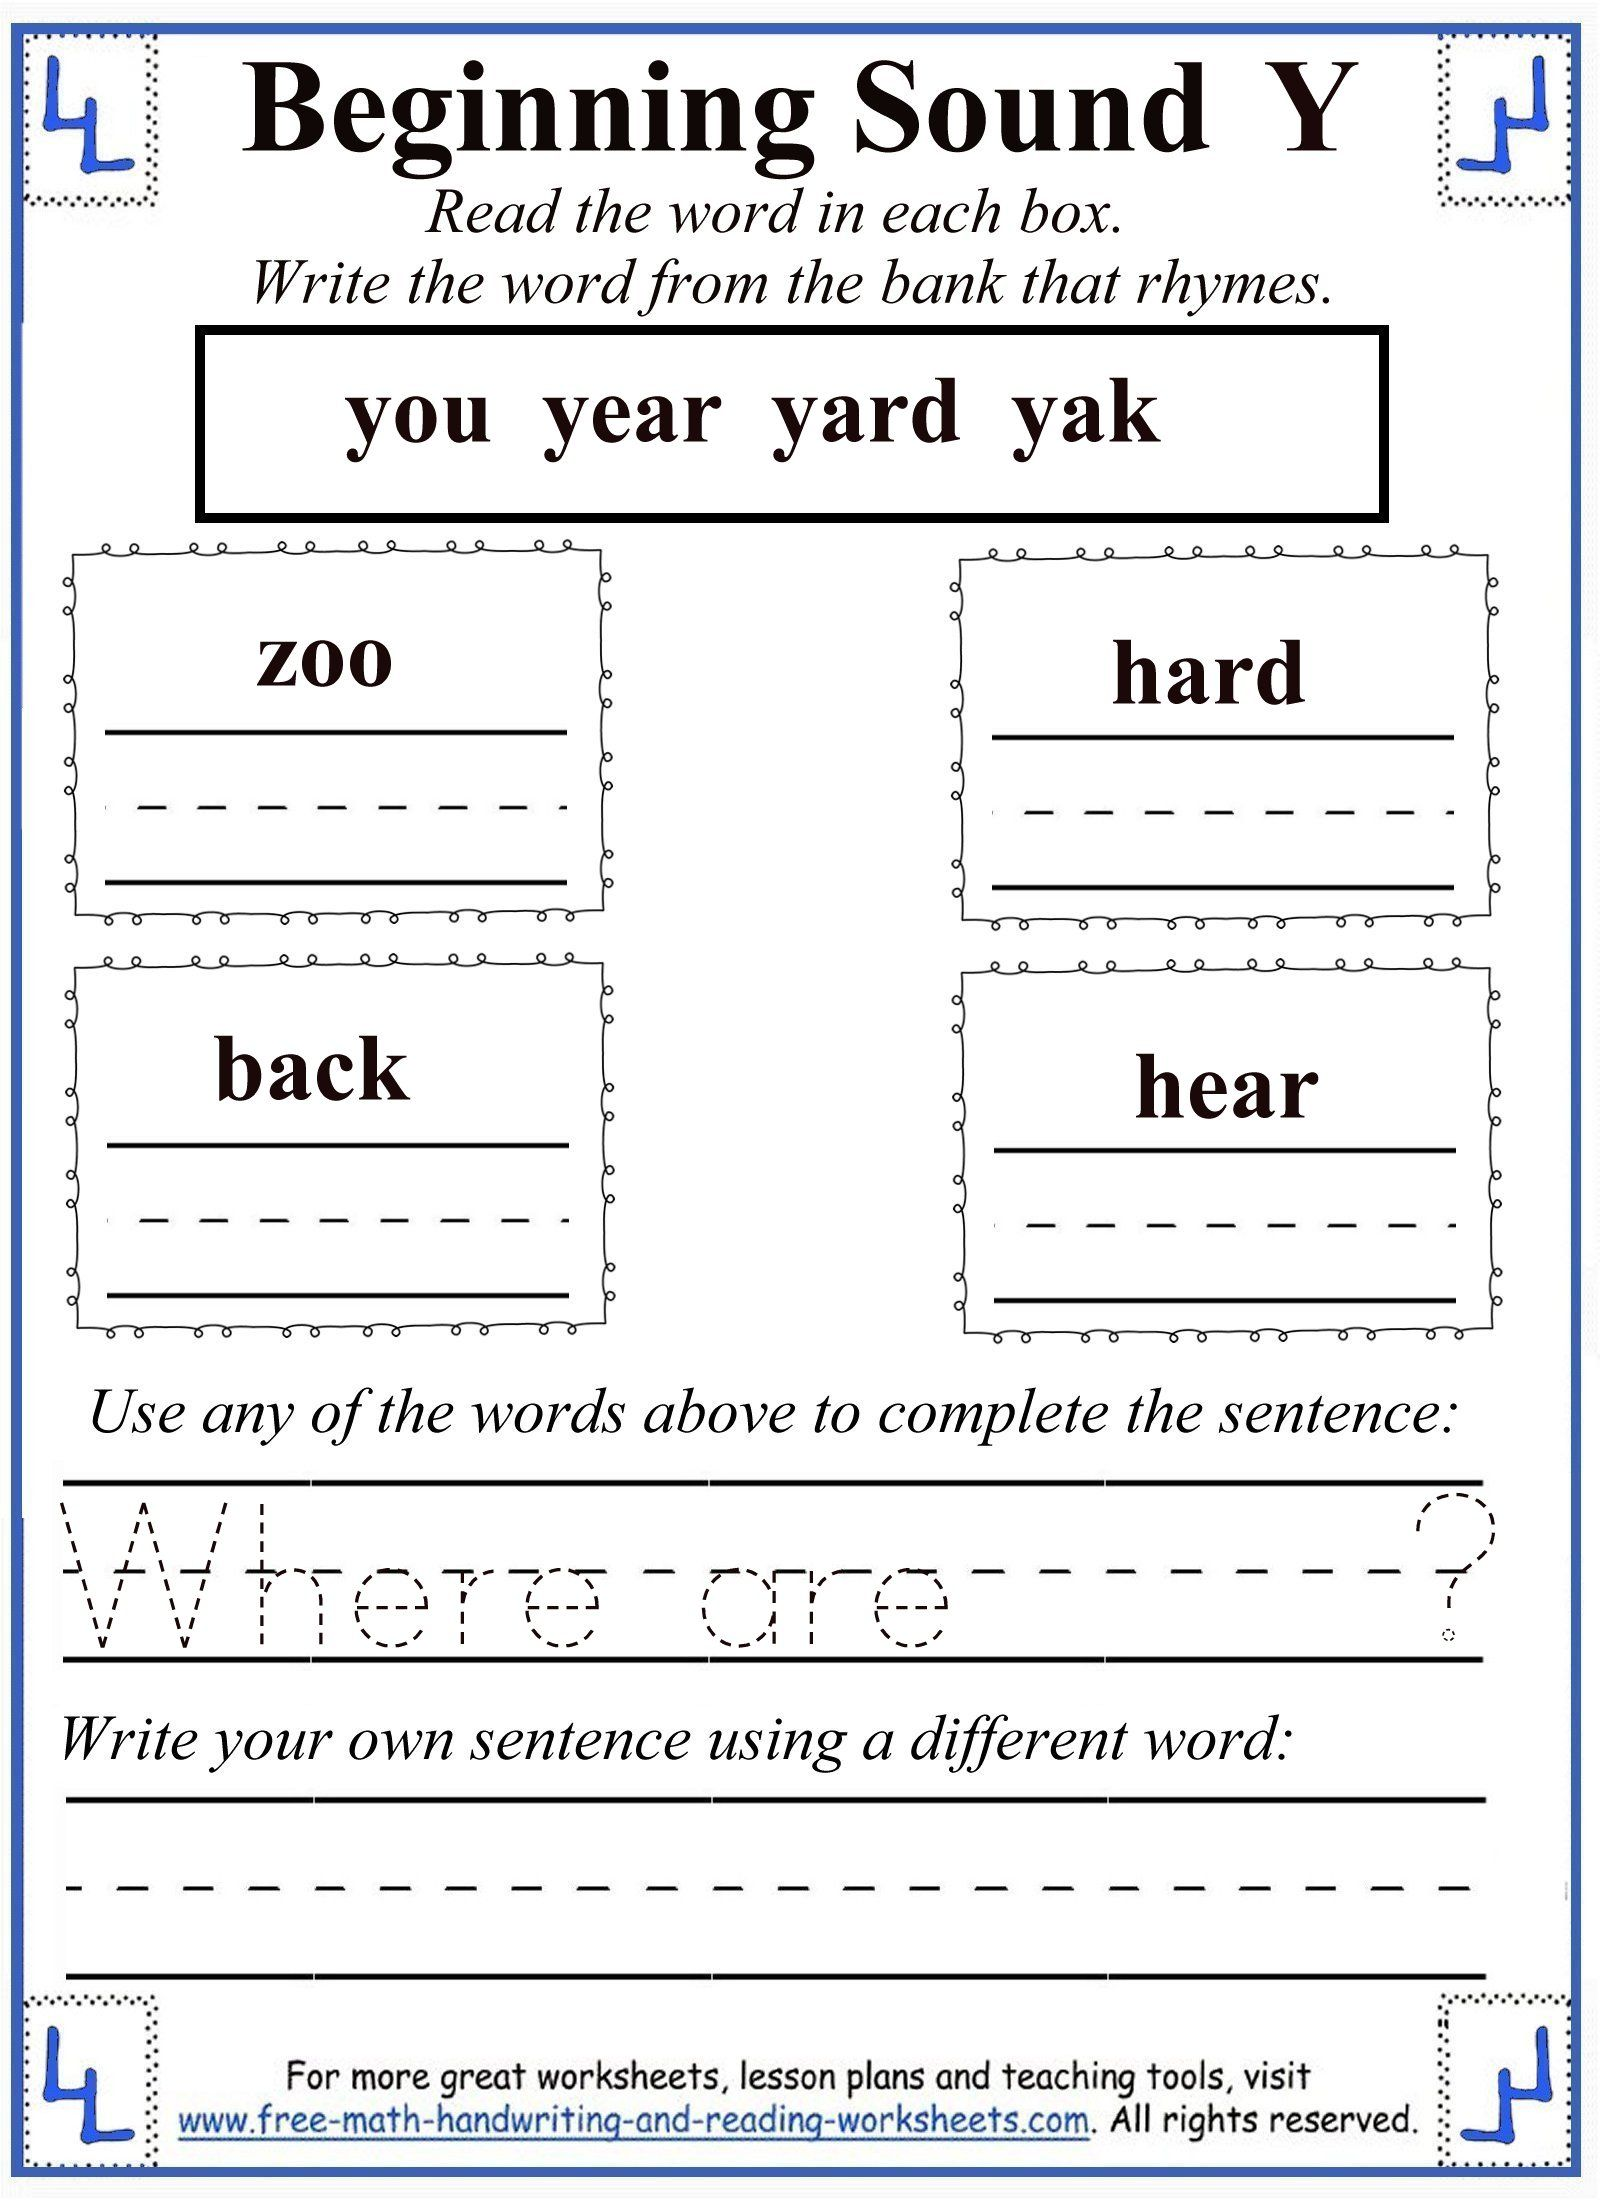 Worksheets Letter Y Worksheet rhyming letter y worksheet consonant letters pinterest worksheet